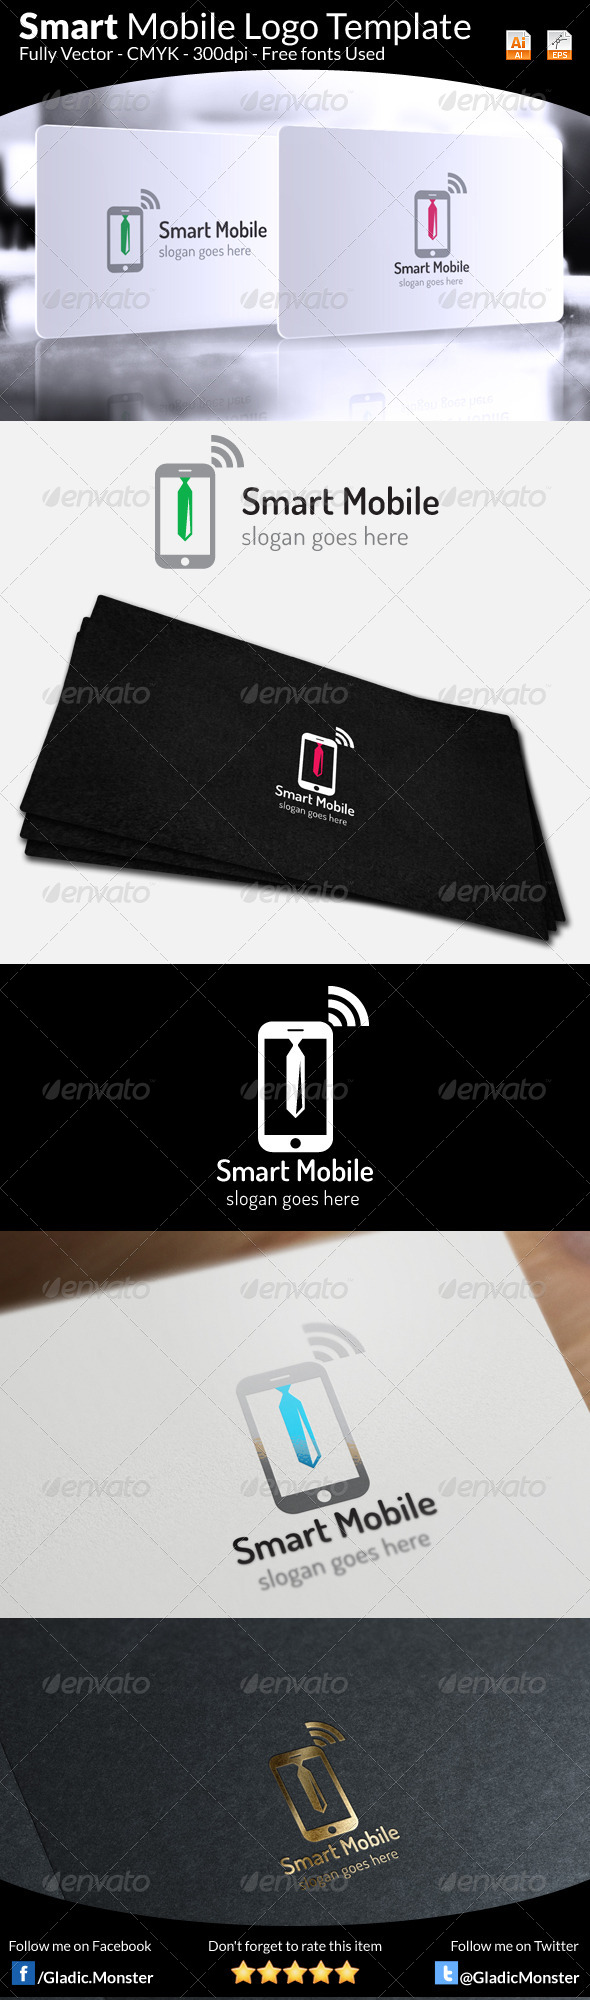 Smart Mobile Logo Template - Symbols Logo Templates